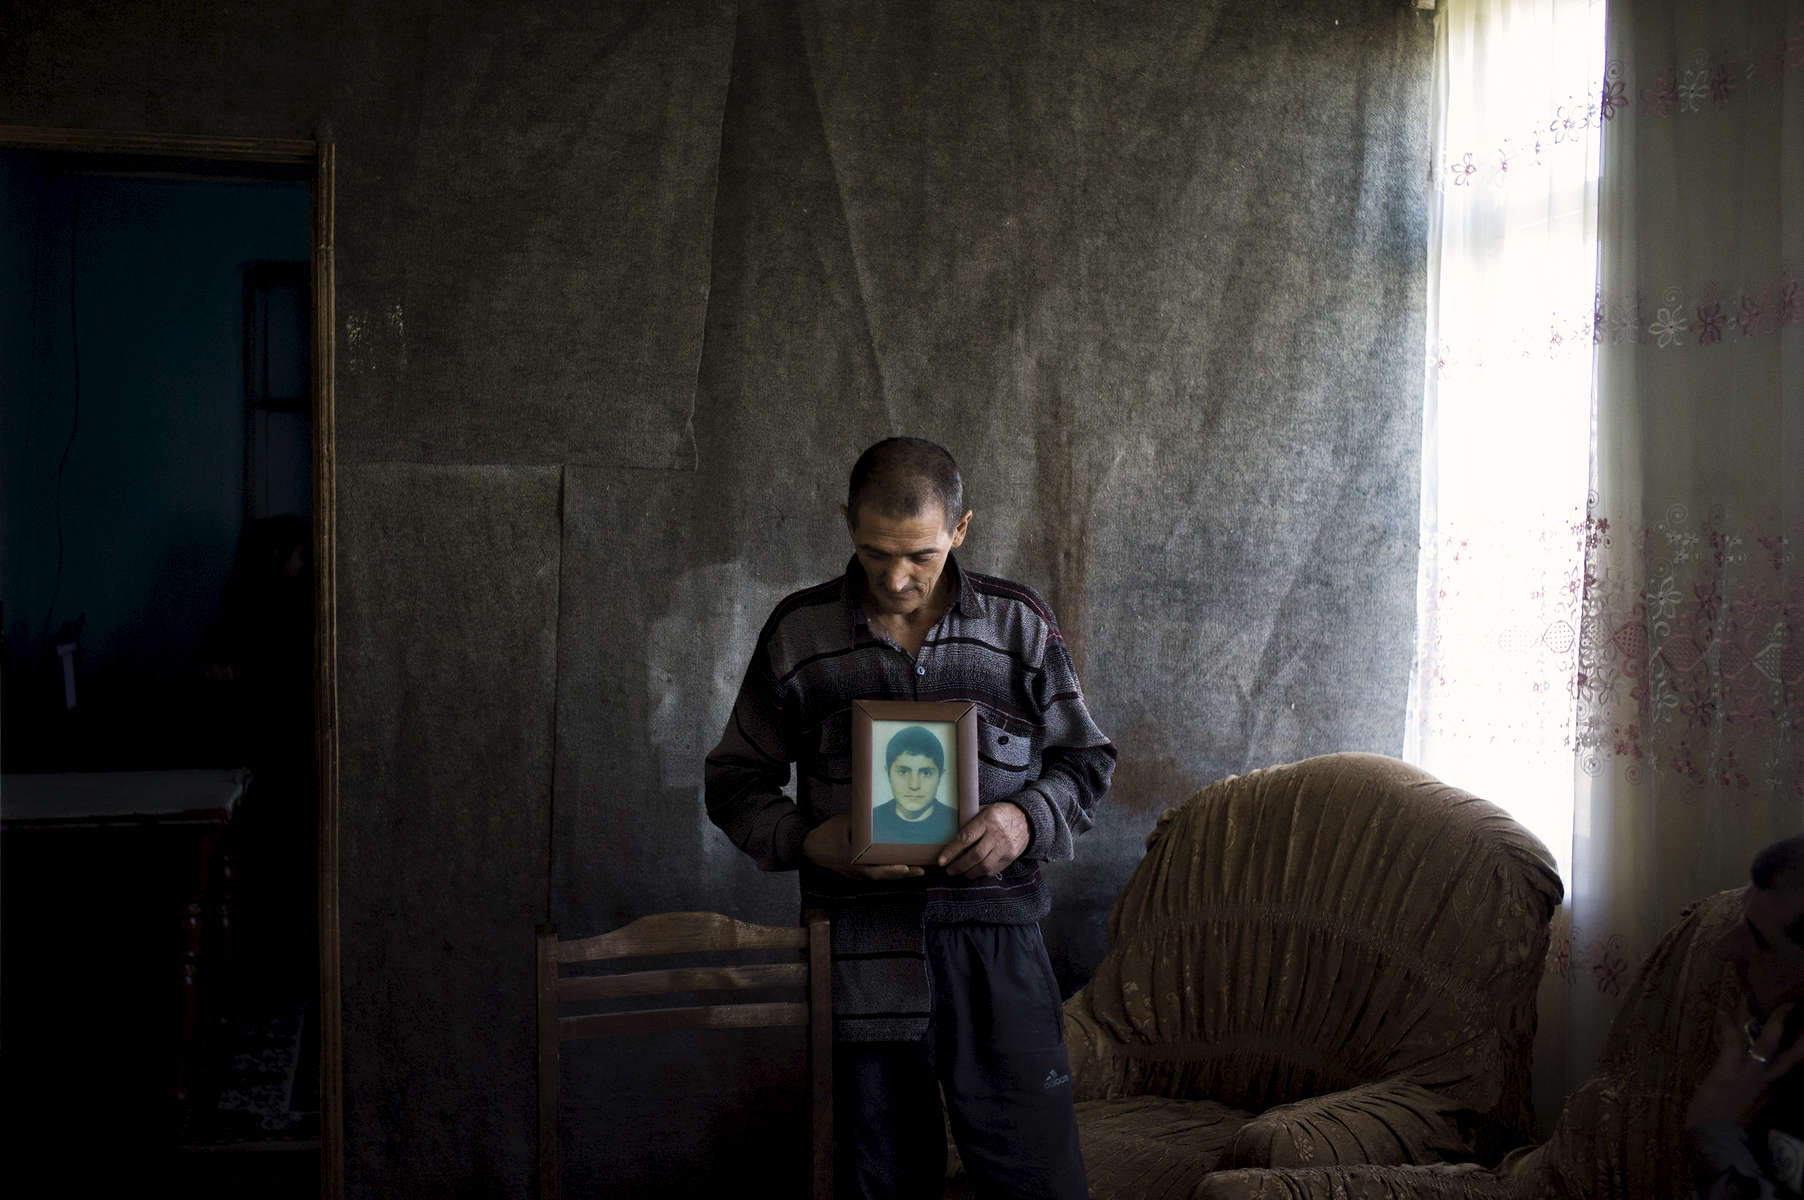 A father holds the portrait of his son who was killed in a cluster bomb accident in Norashen village while gathering scrap metal to help support his family.